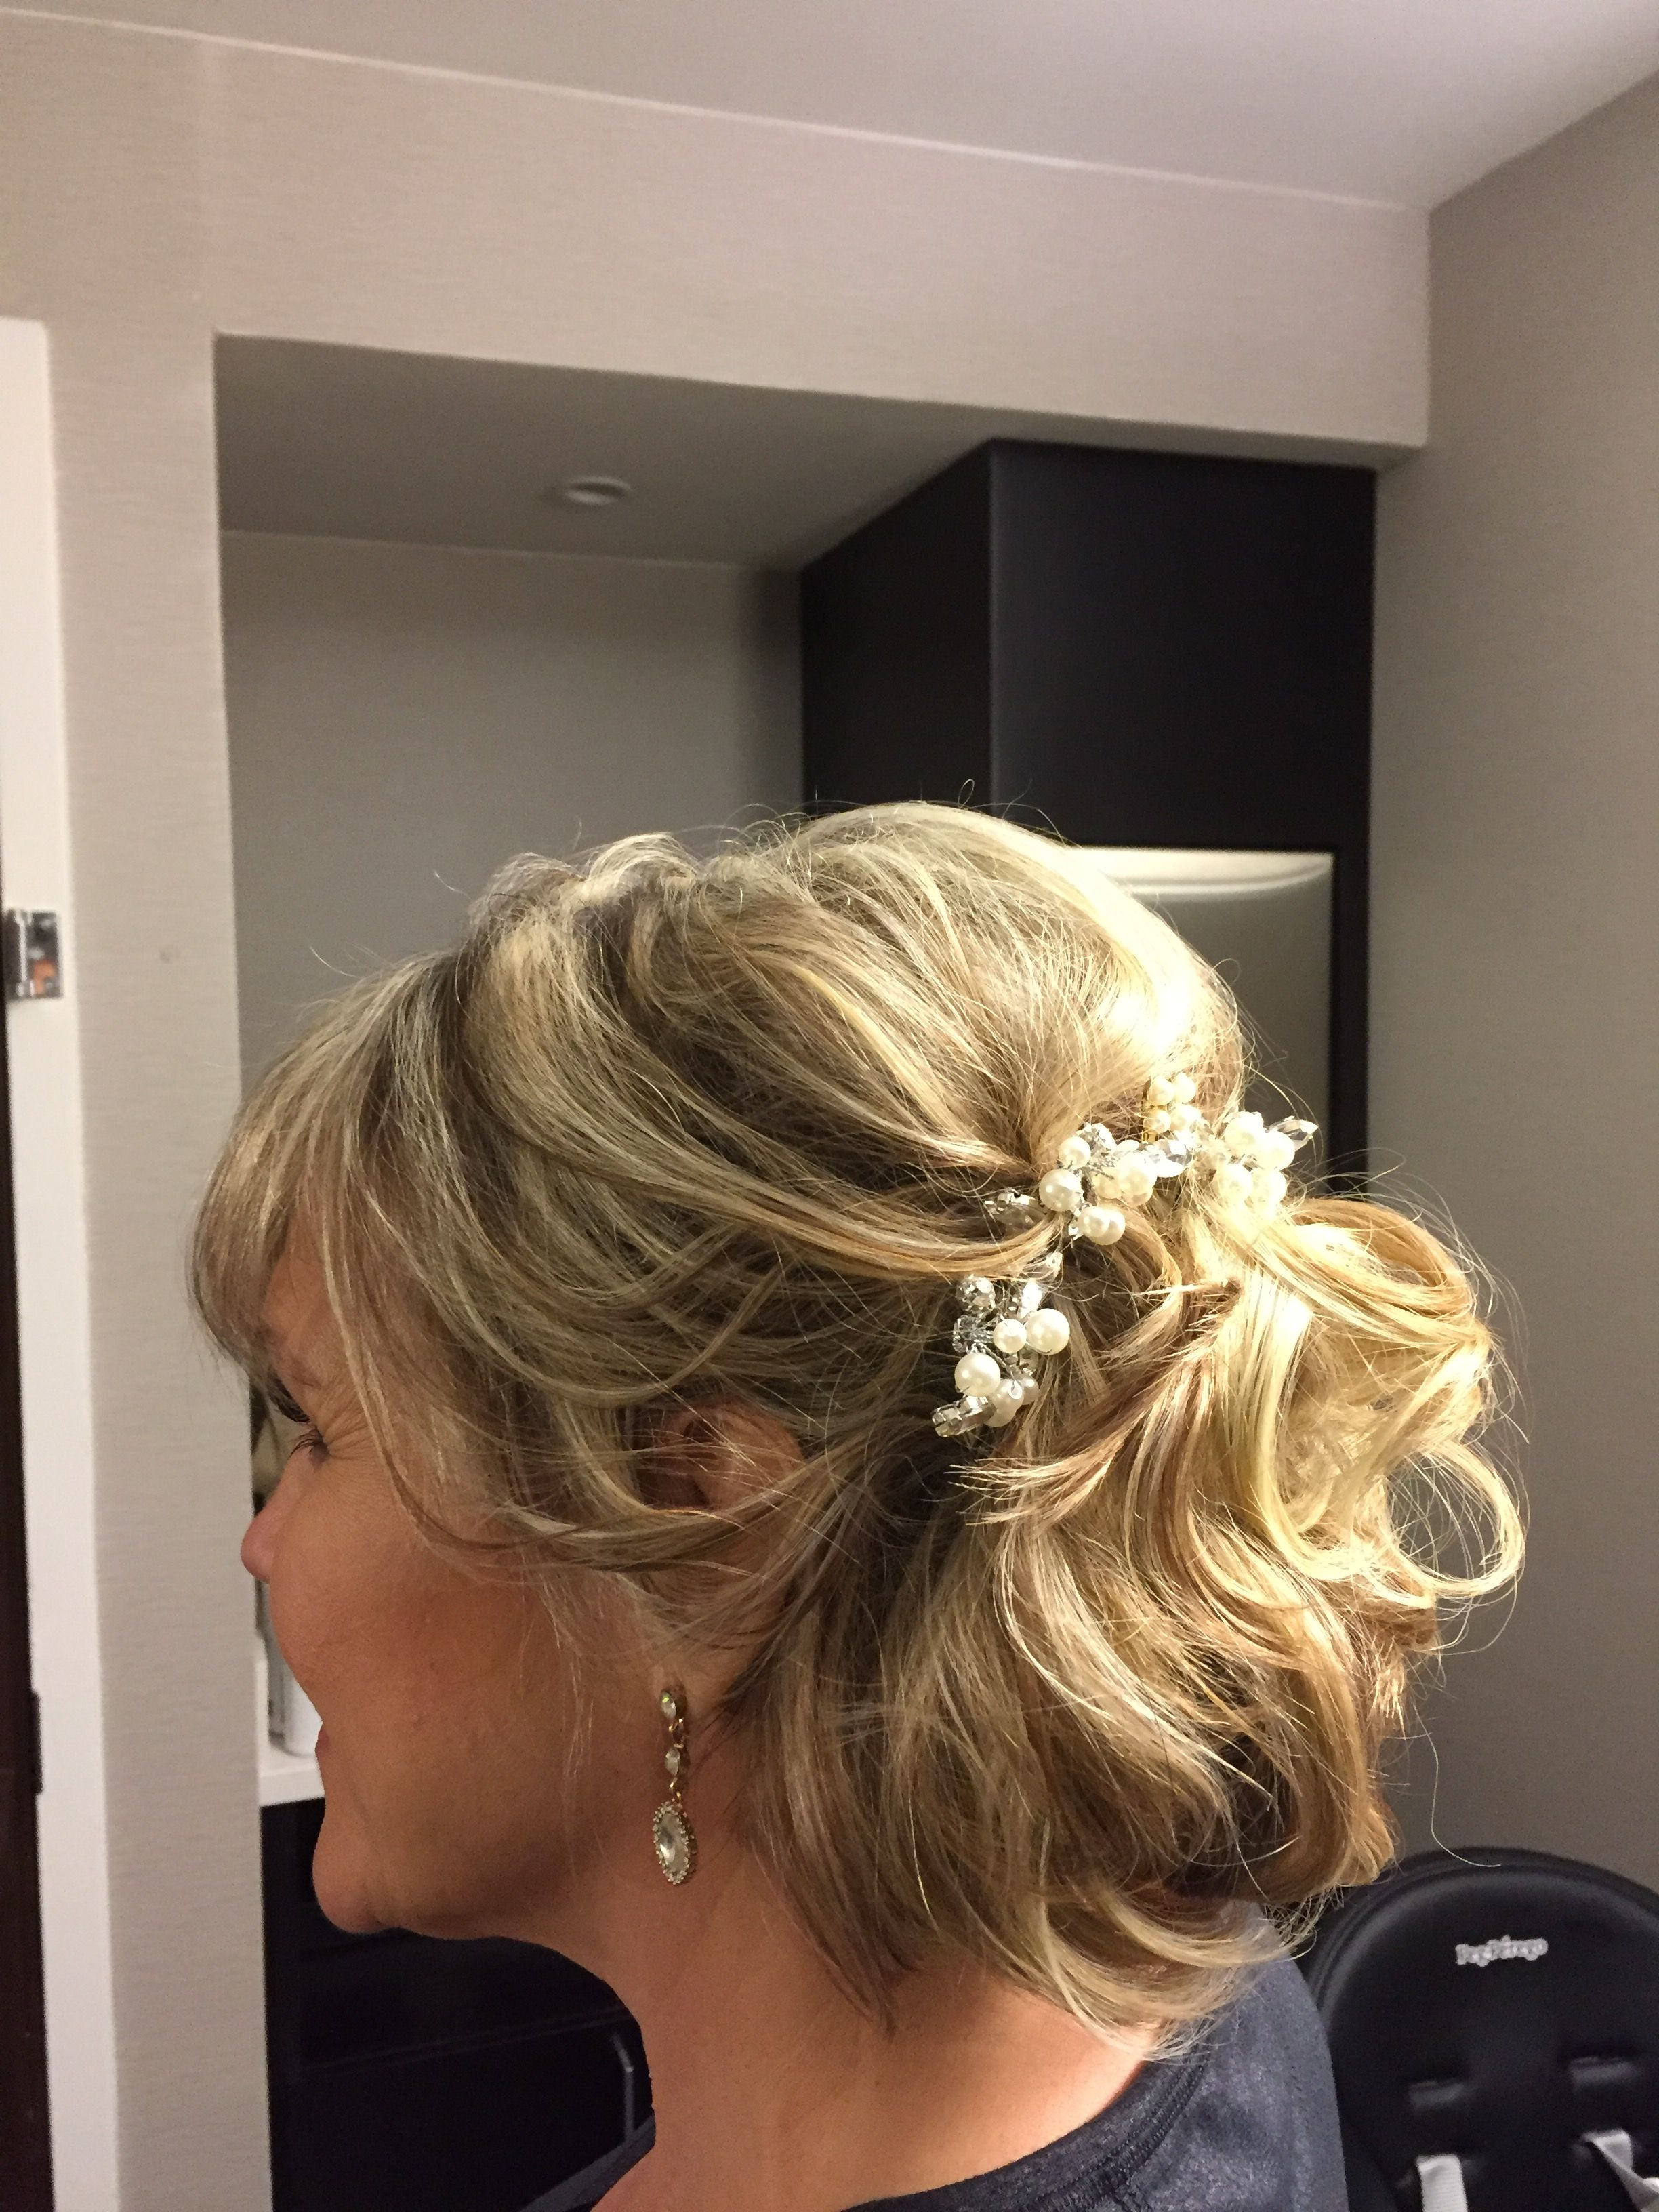 Pin By Kim Salaya On Mob Hairstyles Mother Of The Groom Hairstyles Mother Of The Bride Hair Short Hair Updo